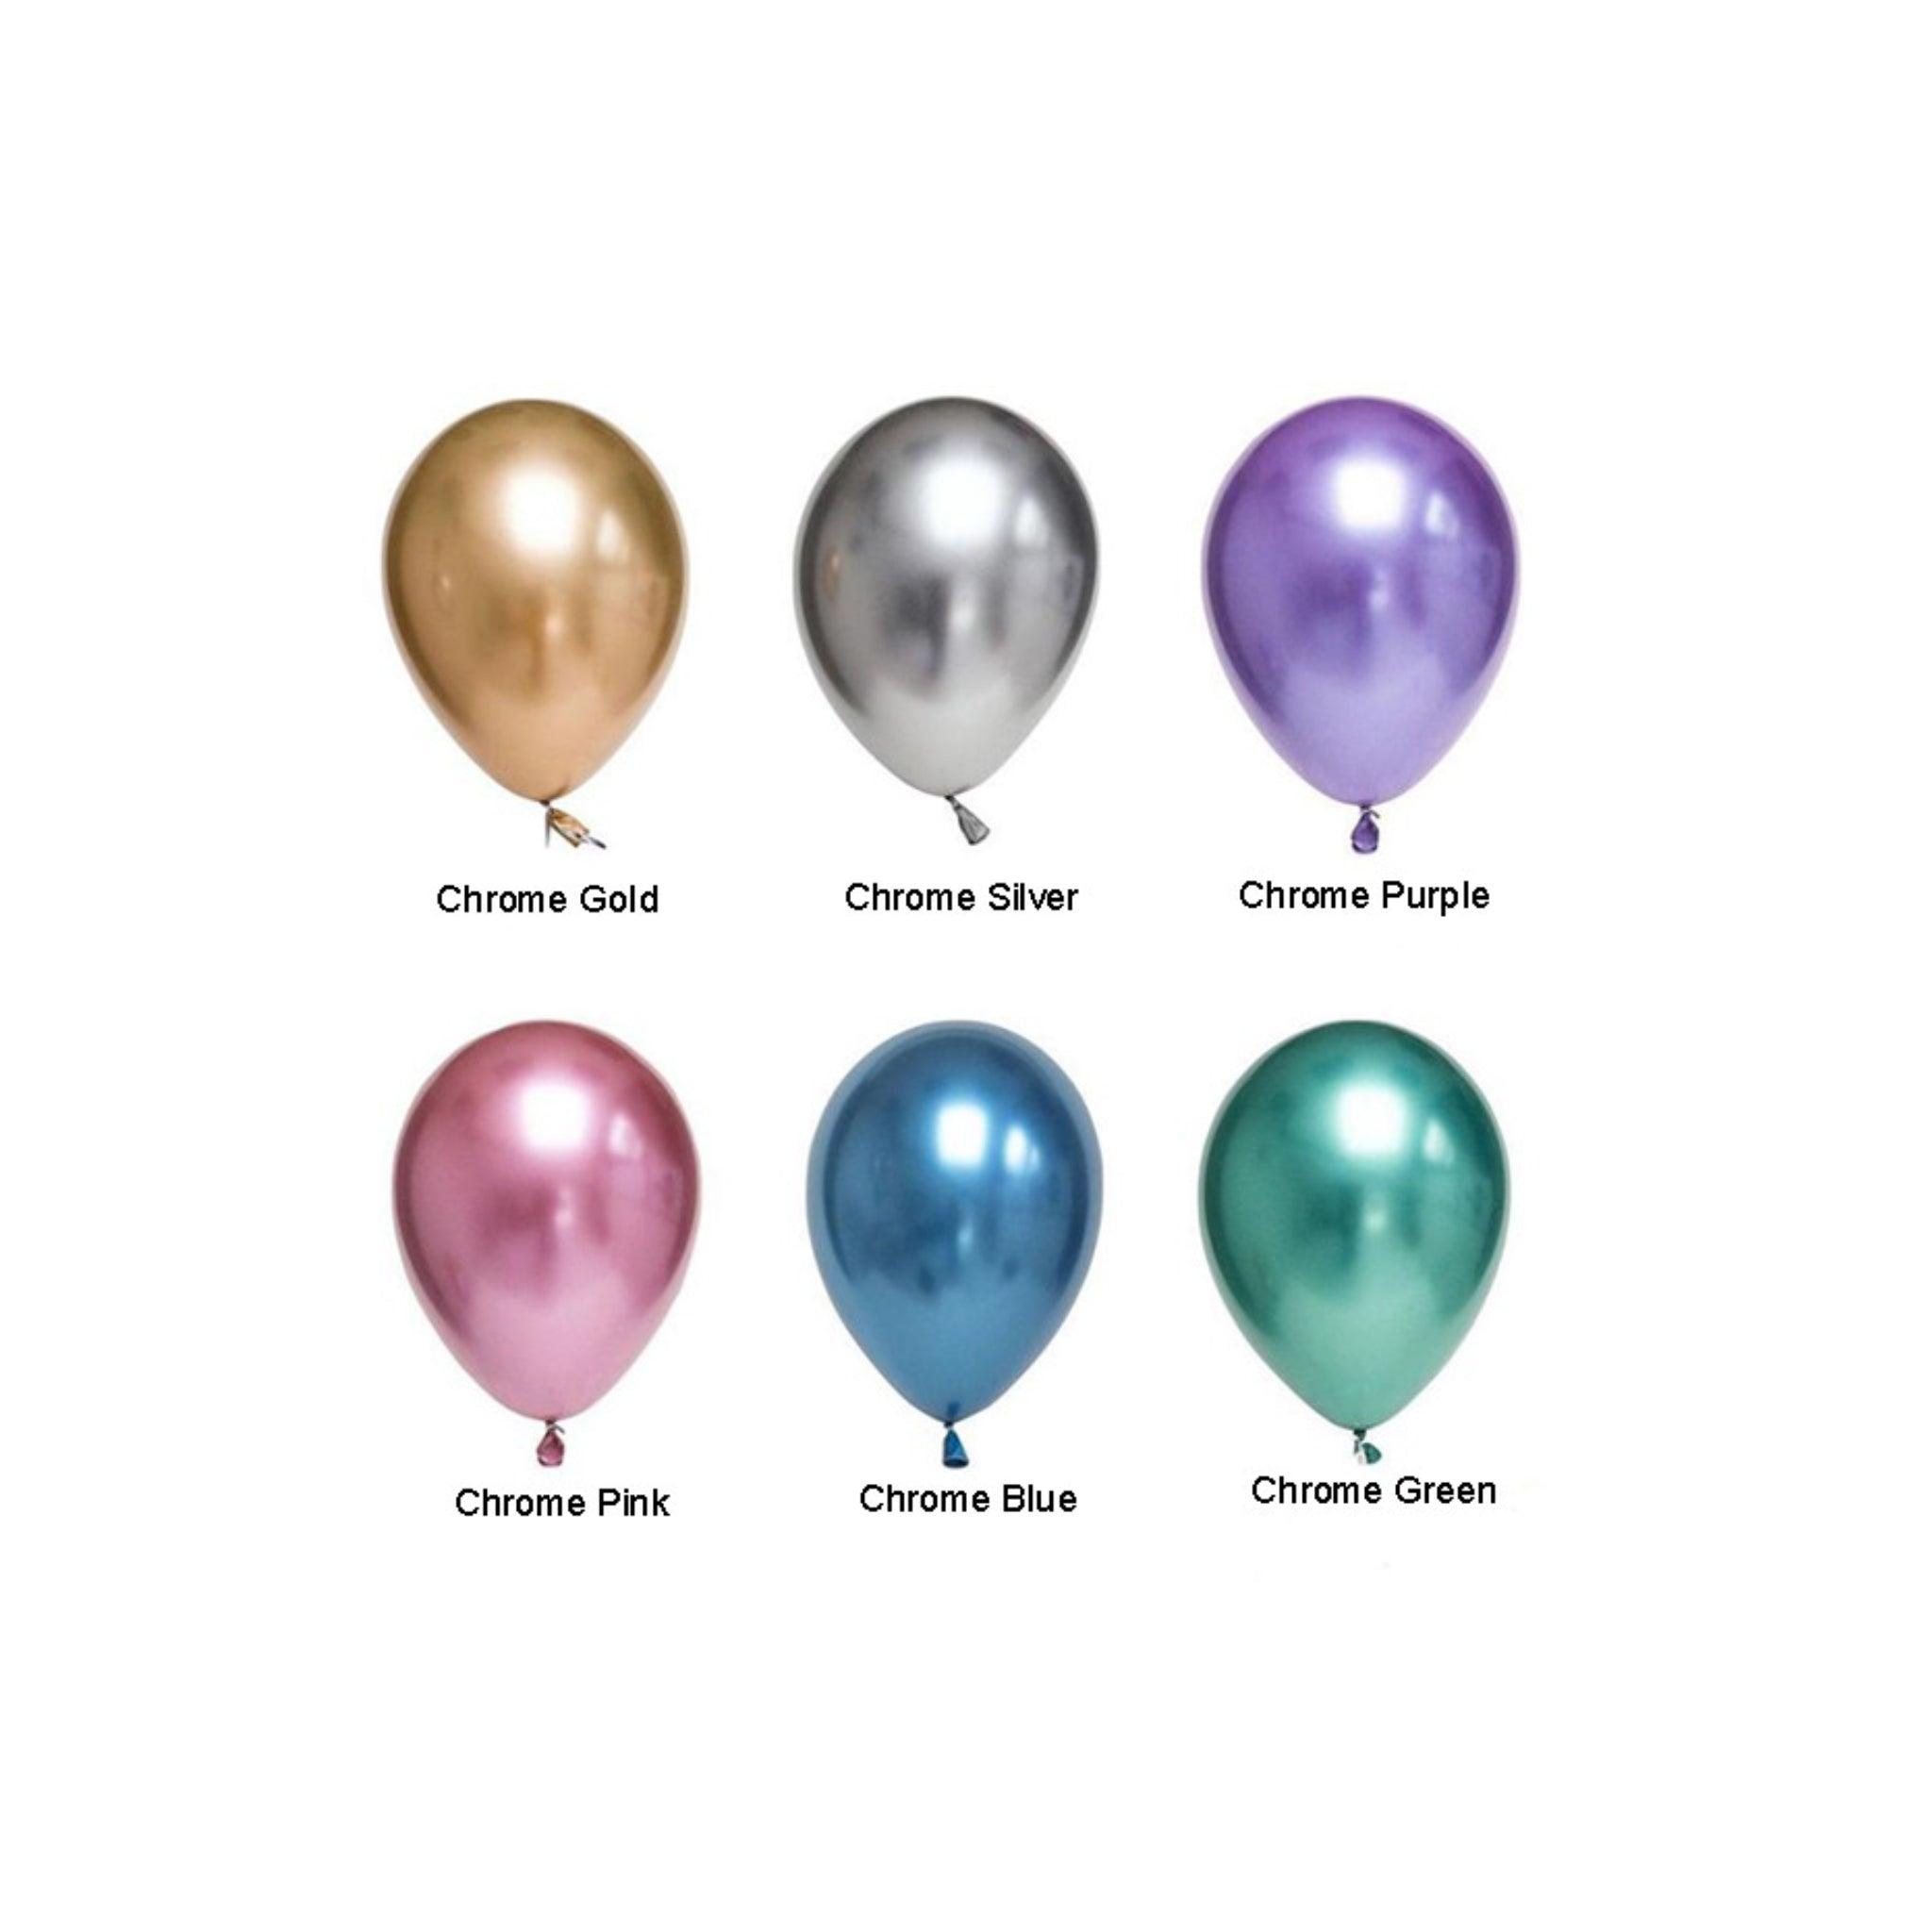 Chrome Balloons (3-5 days leadtime) - 10pcs